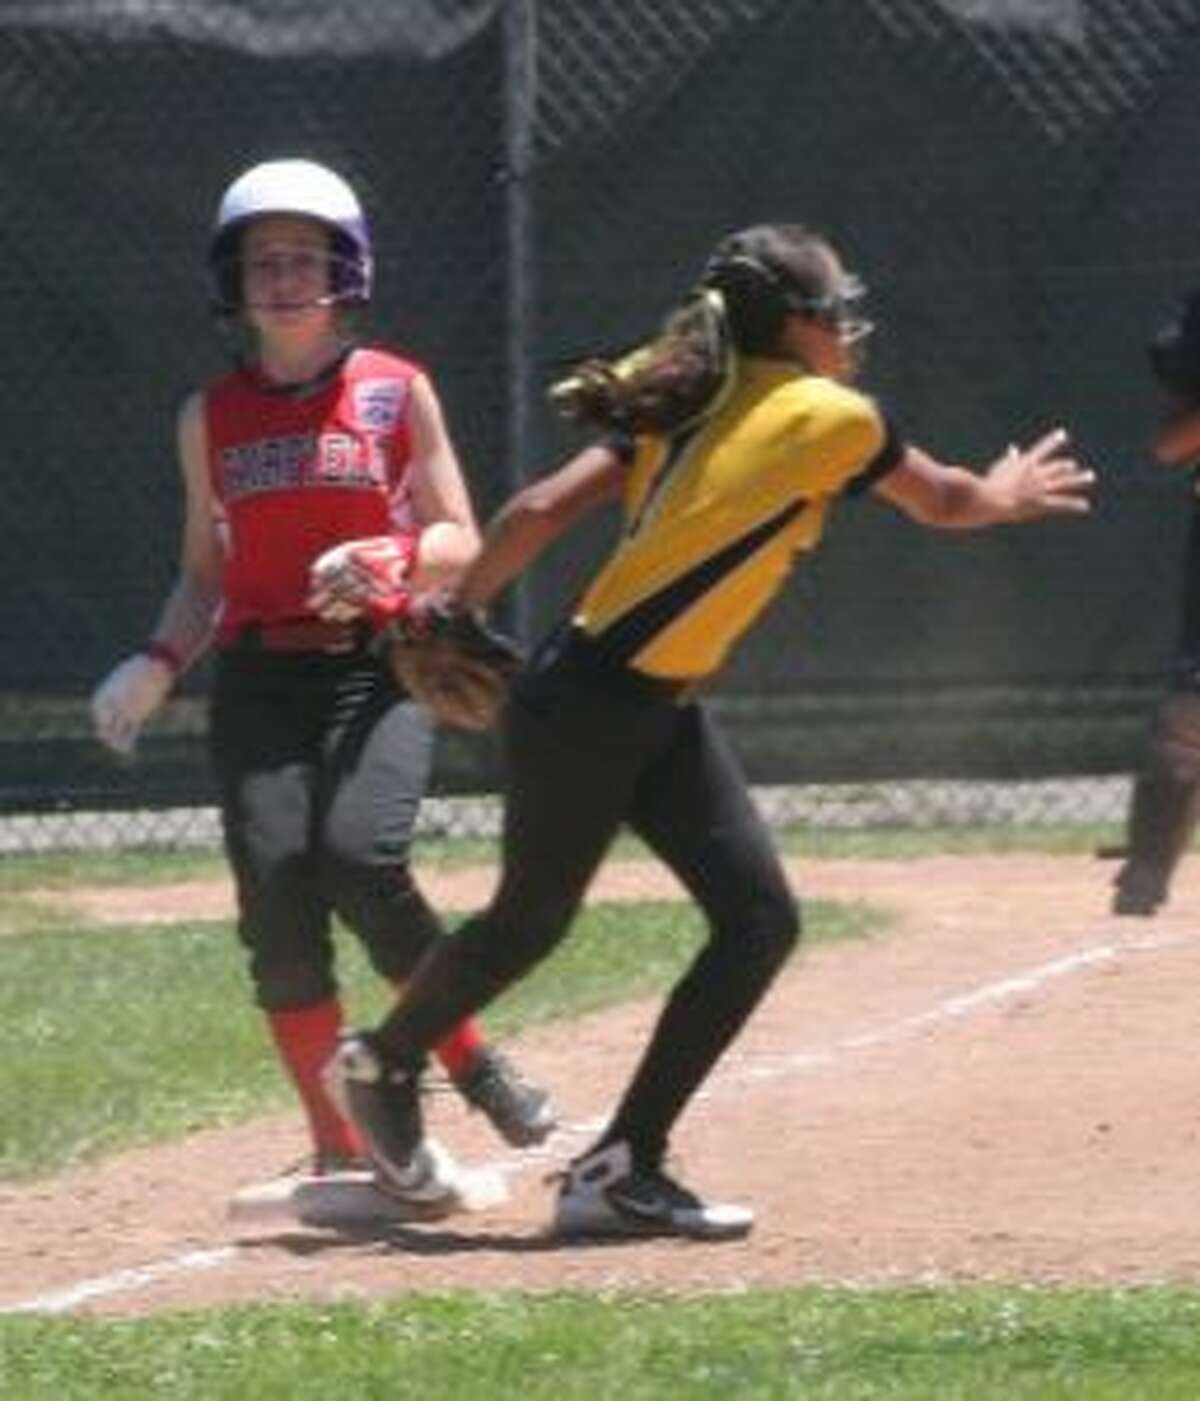 Trumbull's Raylen Massey comes off the bag after getting the put out at first base on Fairfield's Paige O'Neill. - Bill Bloxsom photo